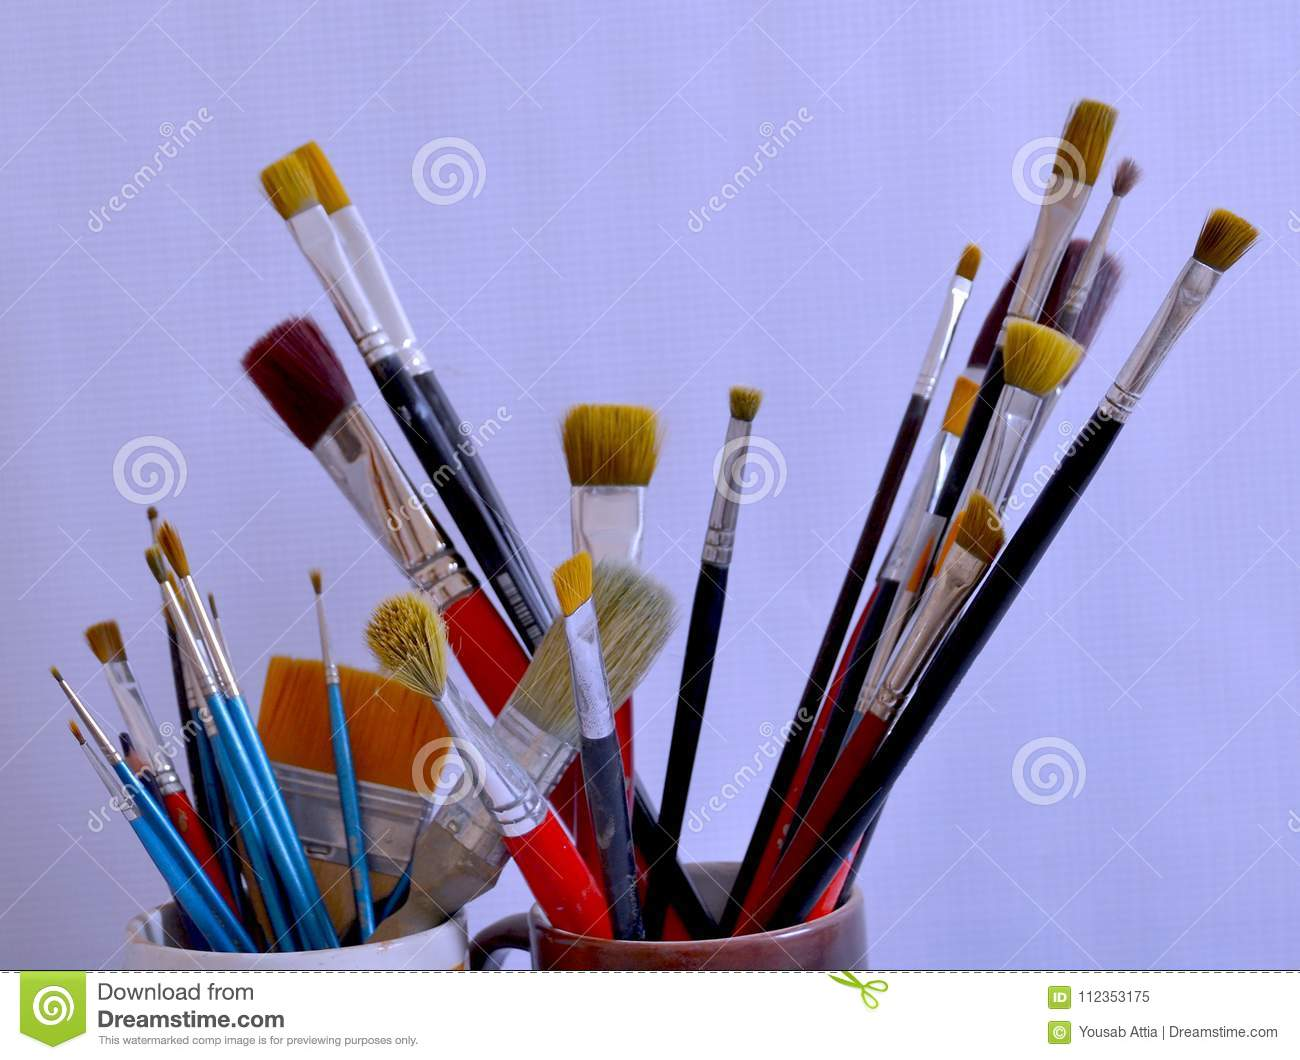 Collect of brushes